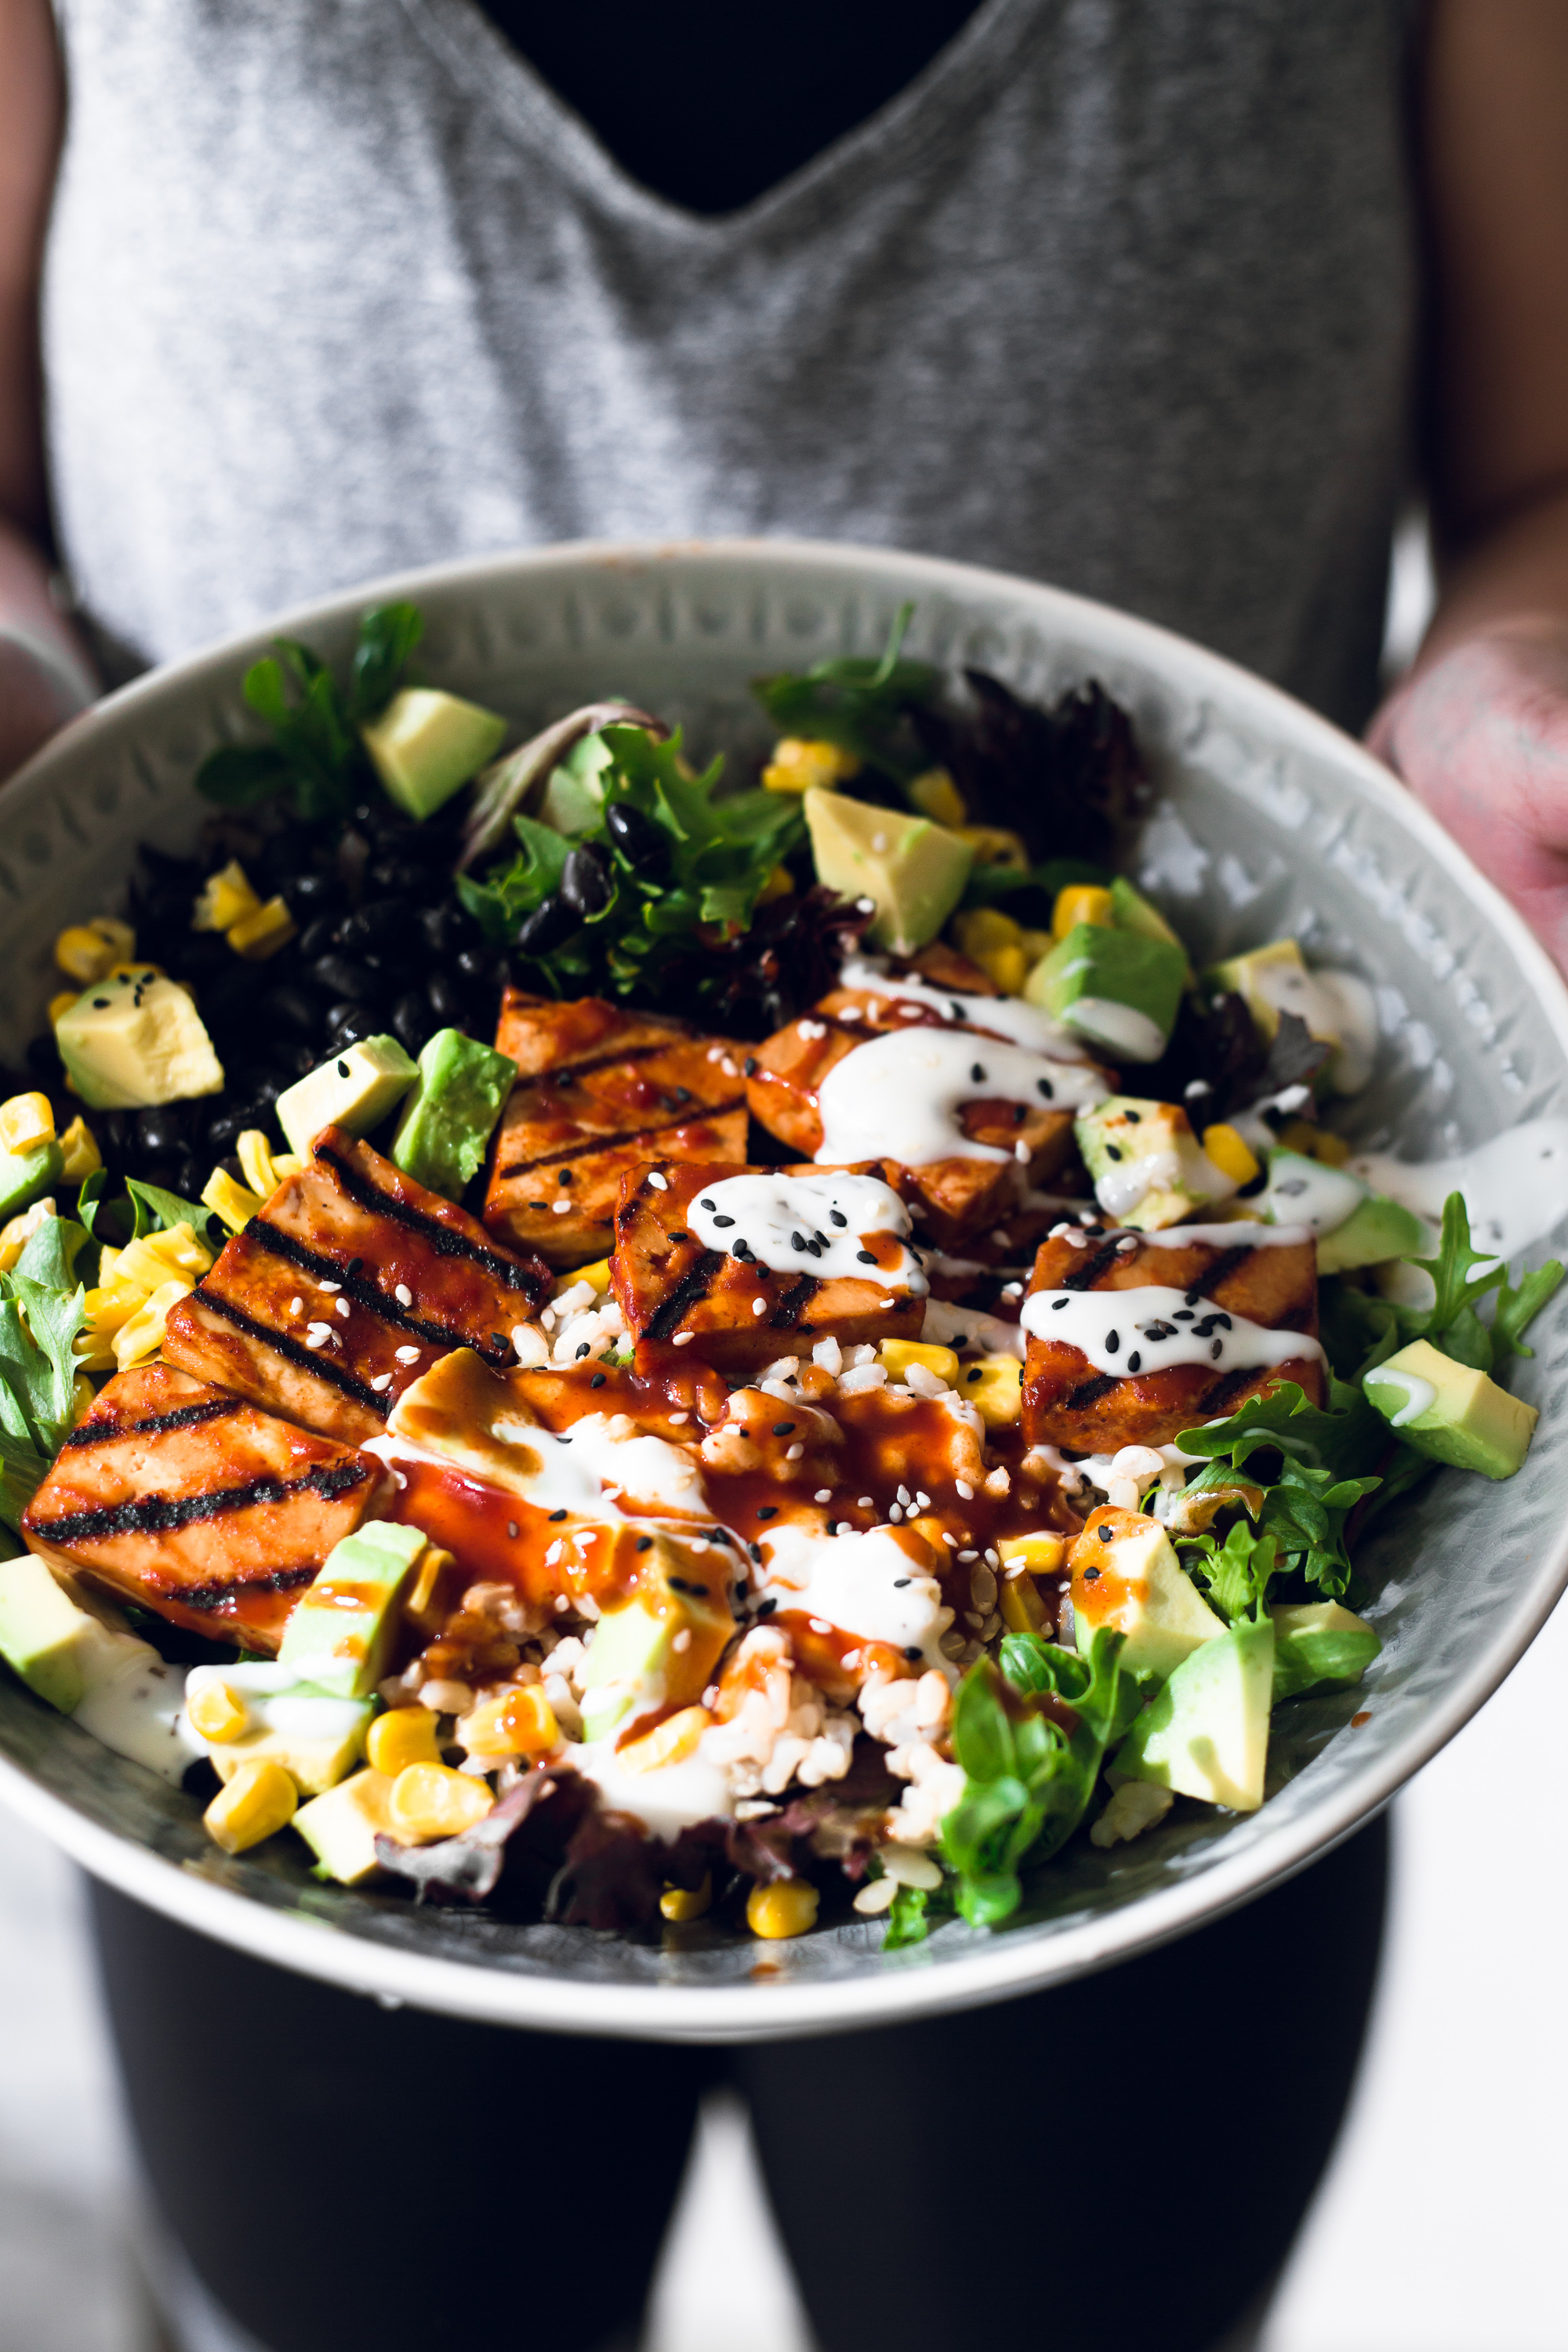 A delicious Vegan Barbecue Bowl loaded with Brown Rice, Avocado, Corn, Black Beans and Smokey Barbecue Tofu. Healthy, delicious, simple. #vegan #bbq #tofu #barbecue #mexican #burritobowl #salad #delicious #healthy #yum